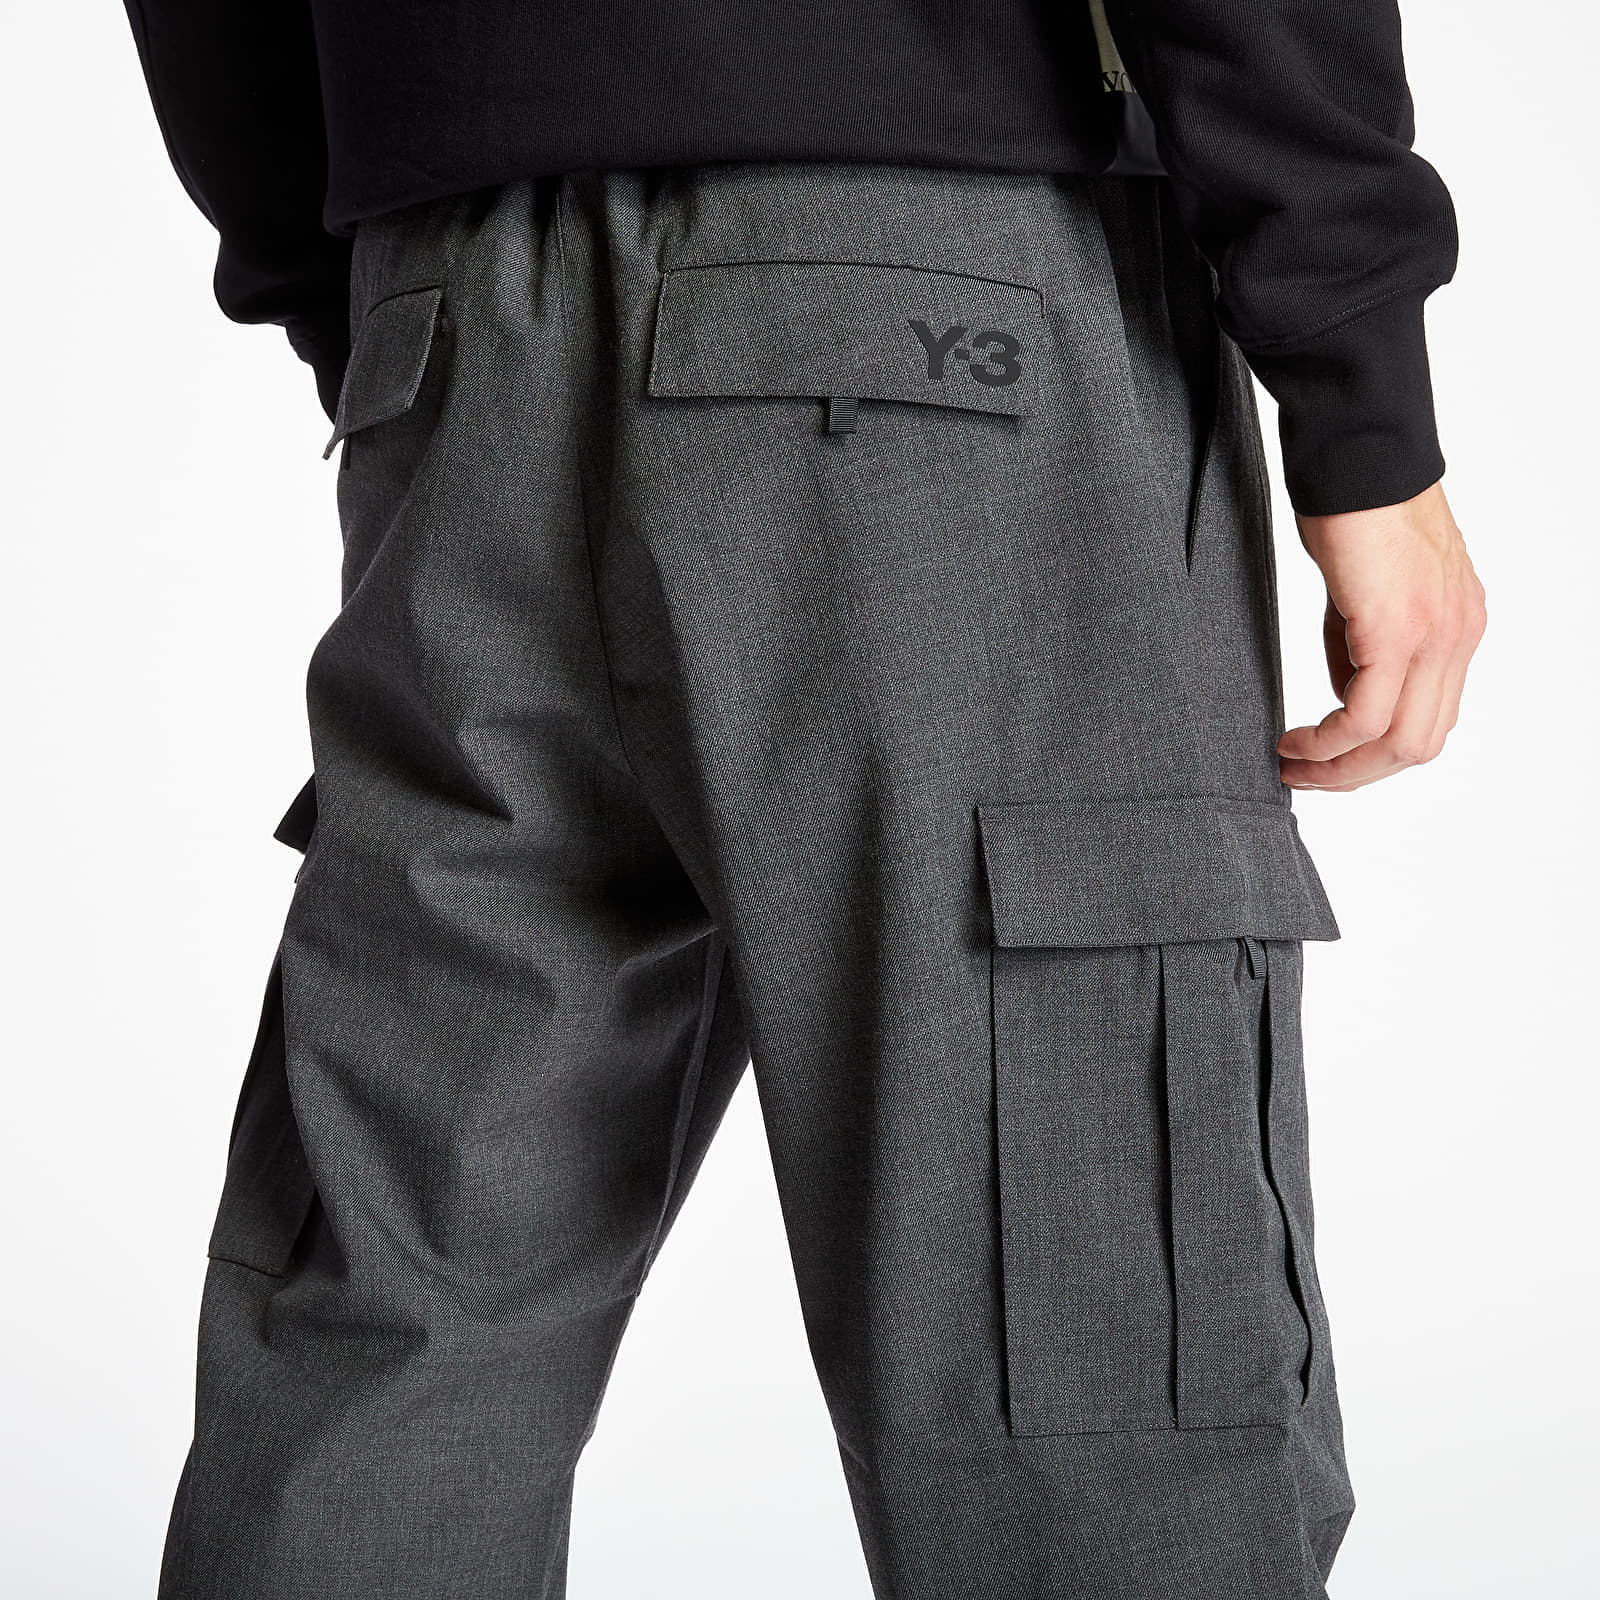 Pantalons Y-3 Classic Wo Cargo Pants Charcoal